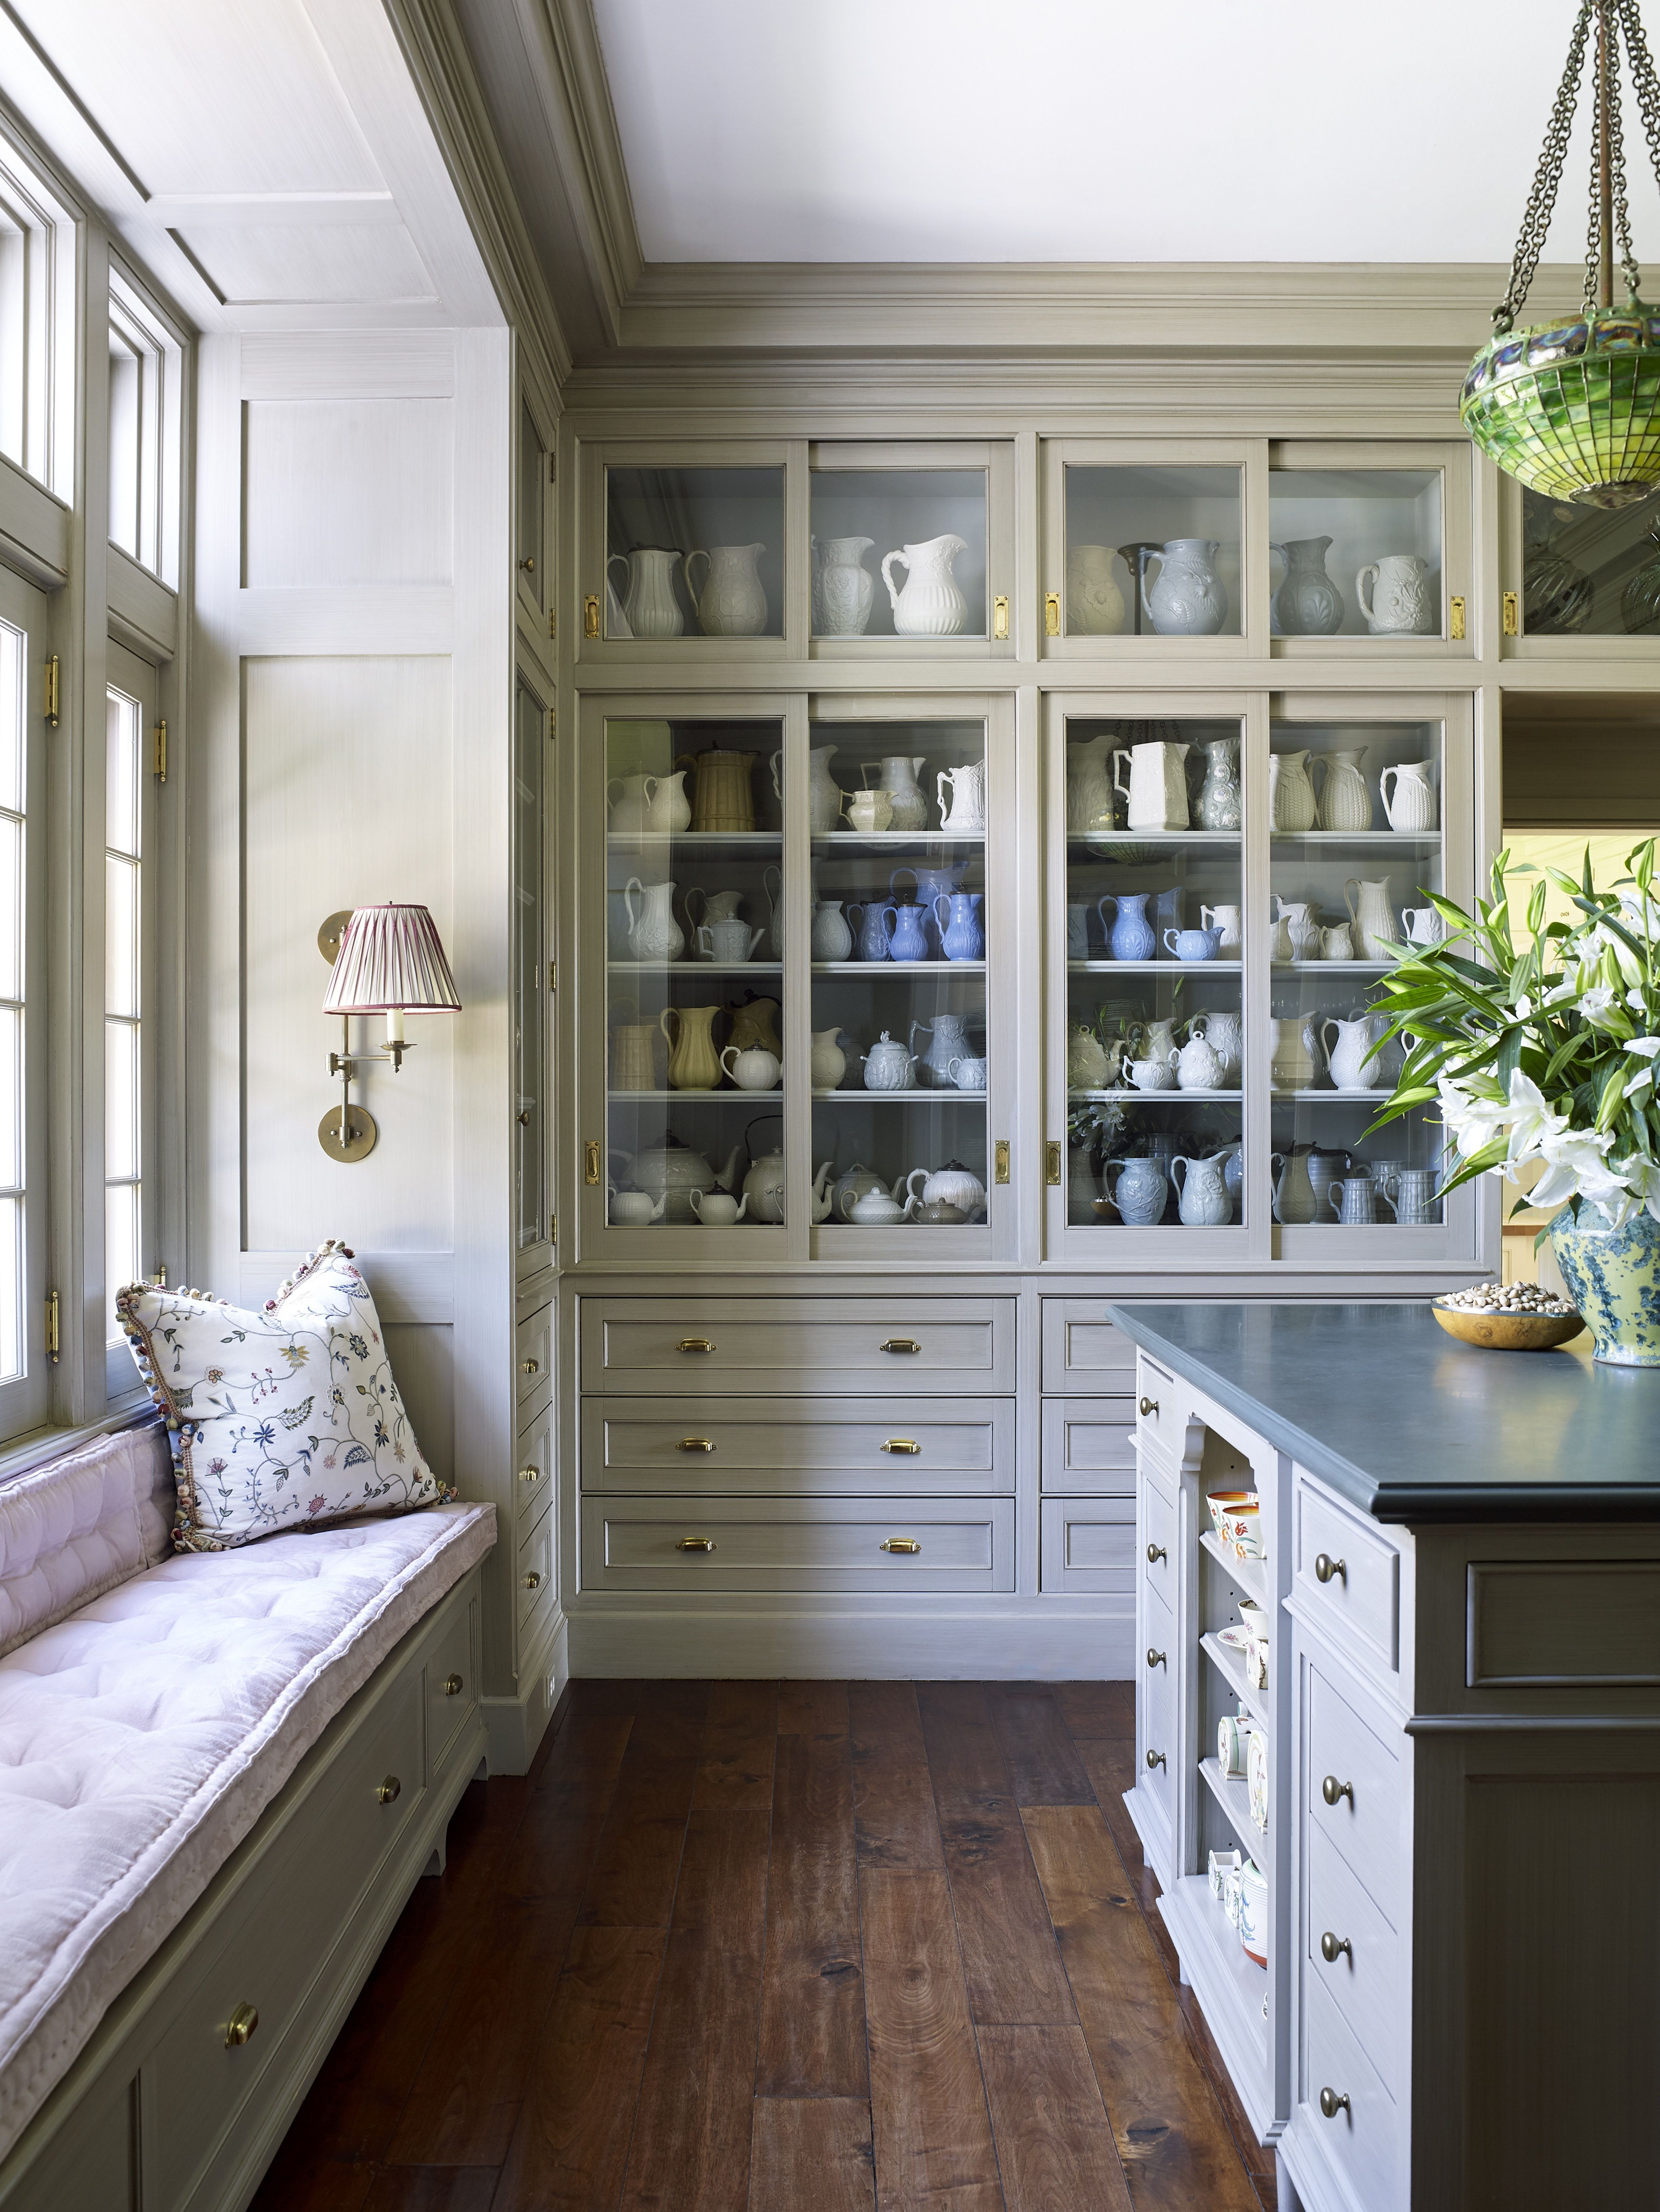 Dish Room And Bar With Glass Fronted Display Cabinets By Ann Wolf Interior Decoration Kitchen Style Farmhouse Style Kitchen Interior